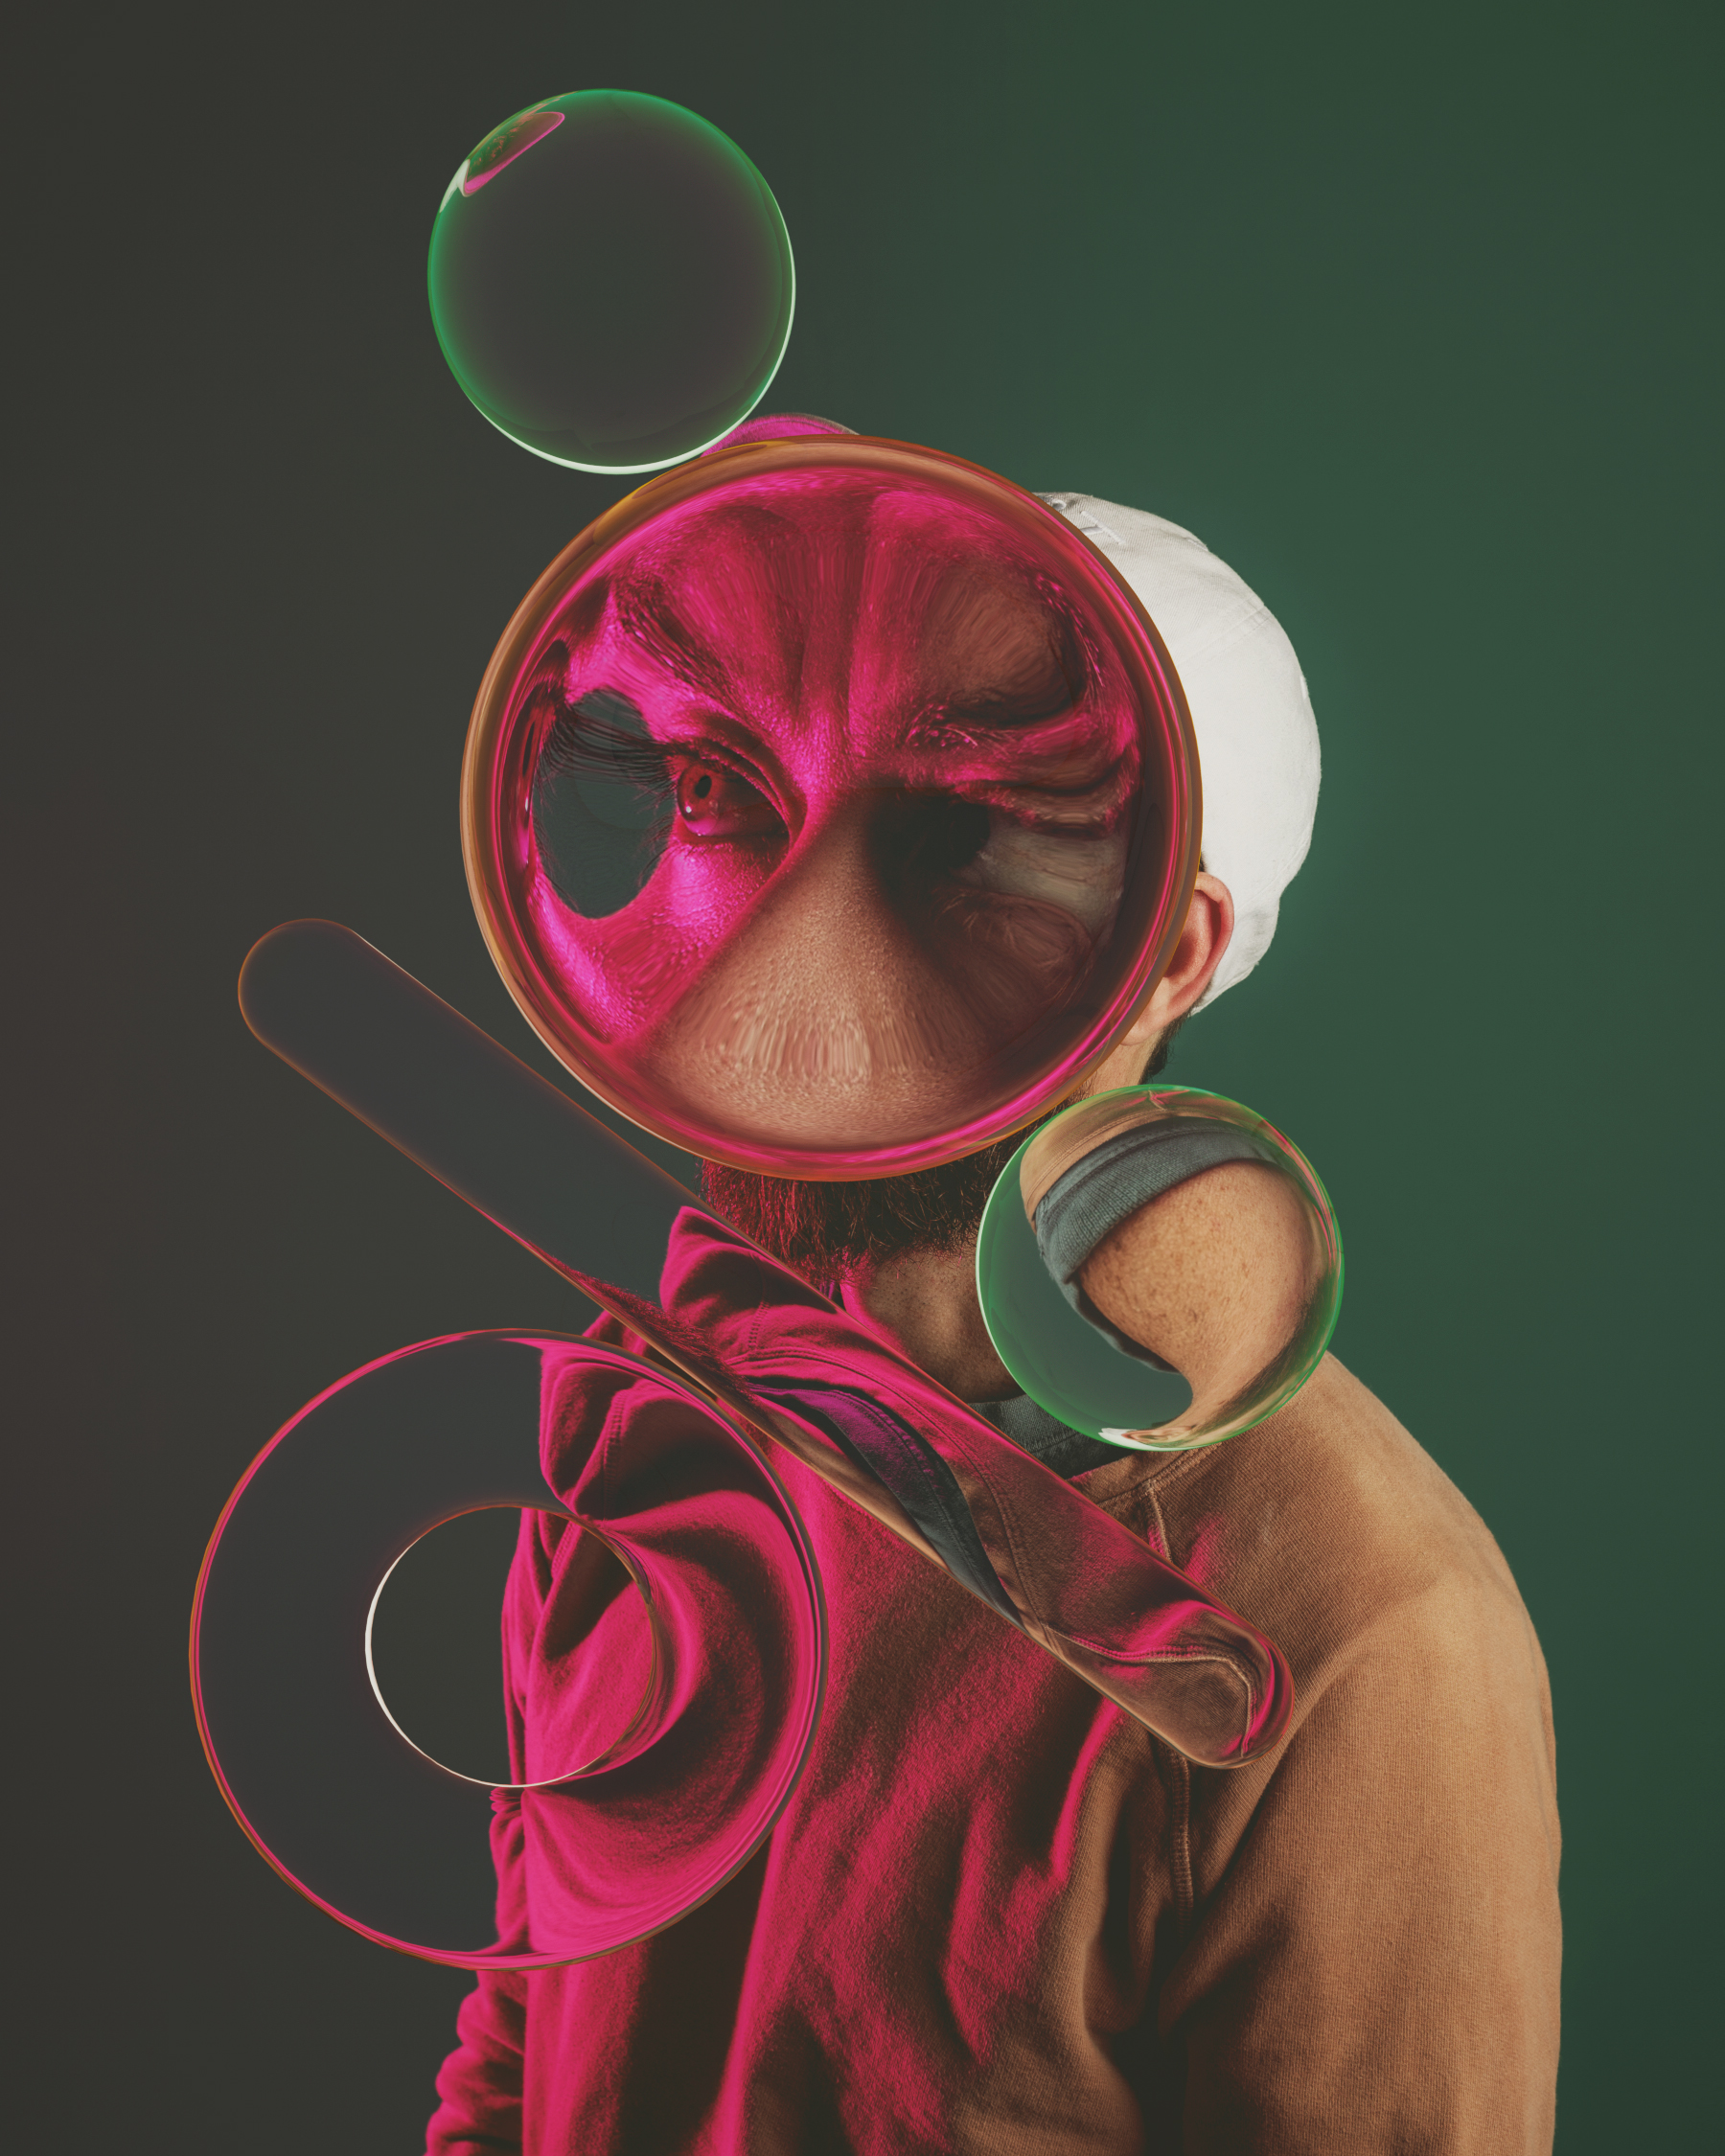 Fun Self-Portraits That Play with Lenses and Refraction (6 pics)